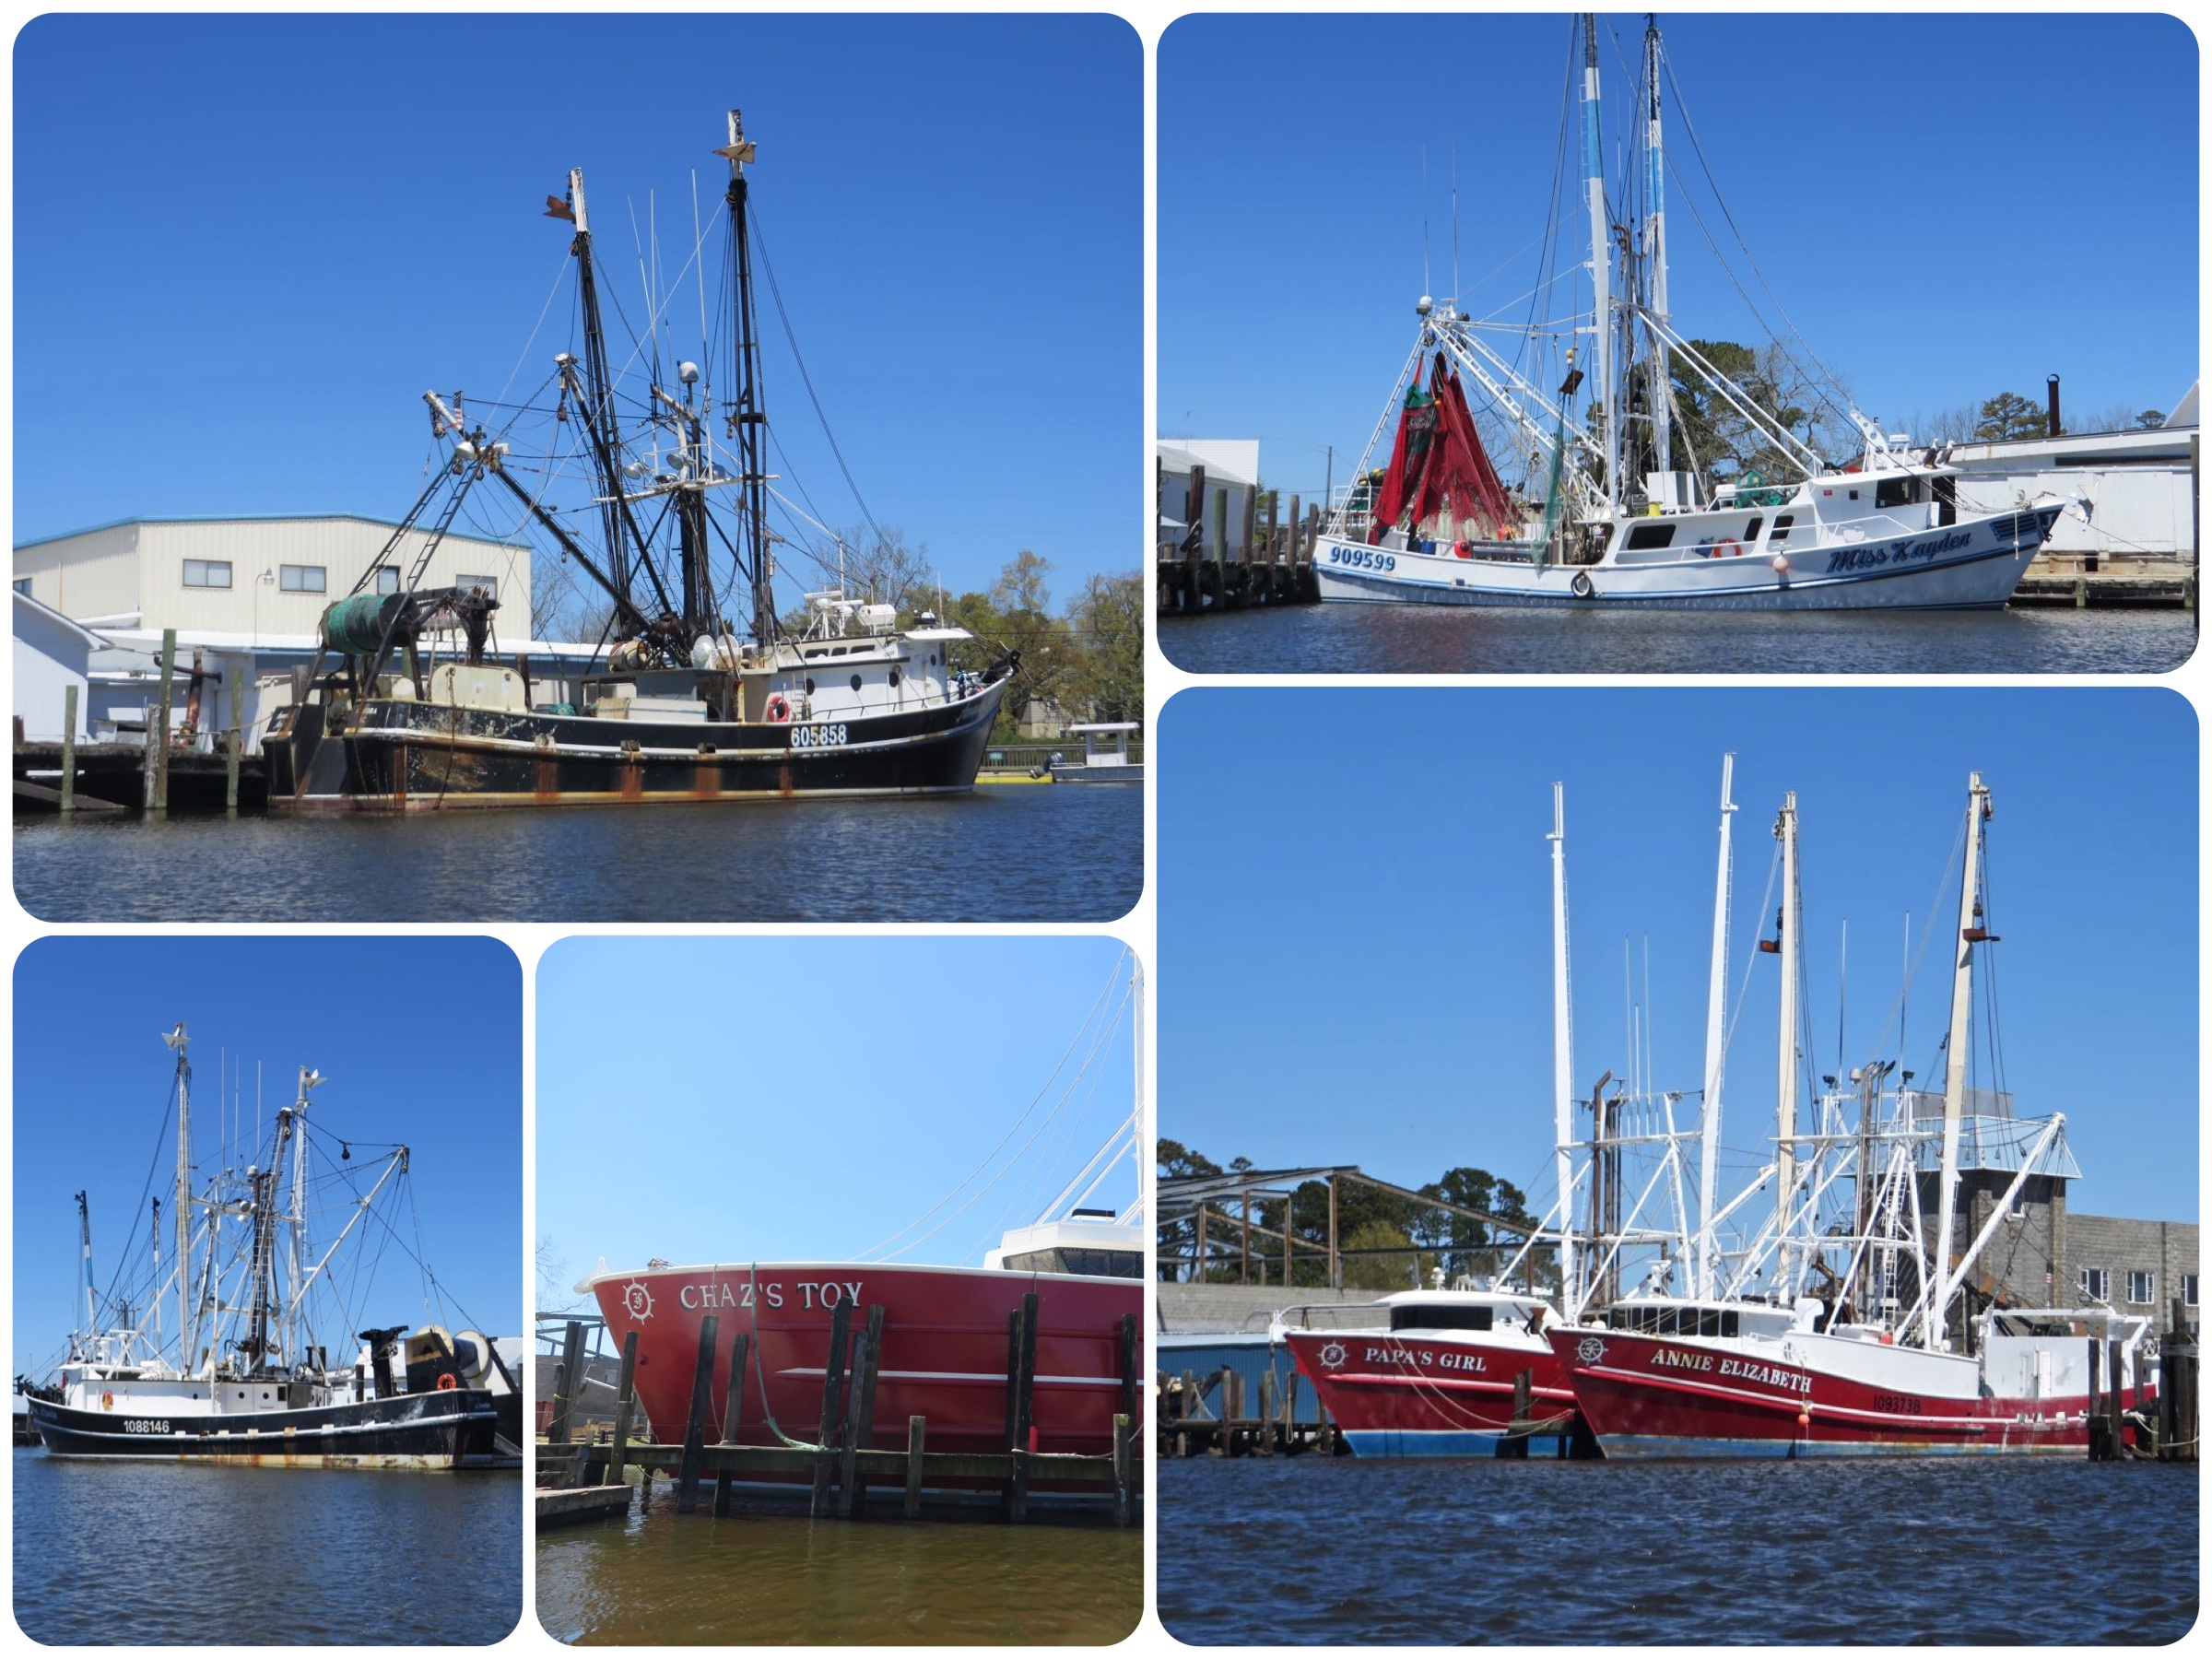 For a small town and harbor, there are a lot of fishing trawlers here.